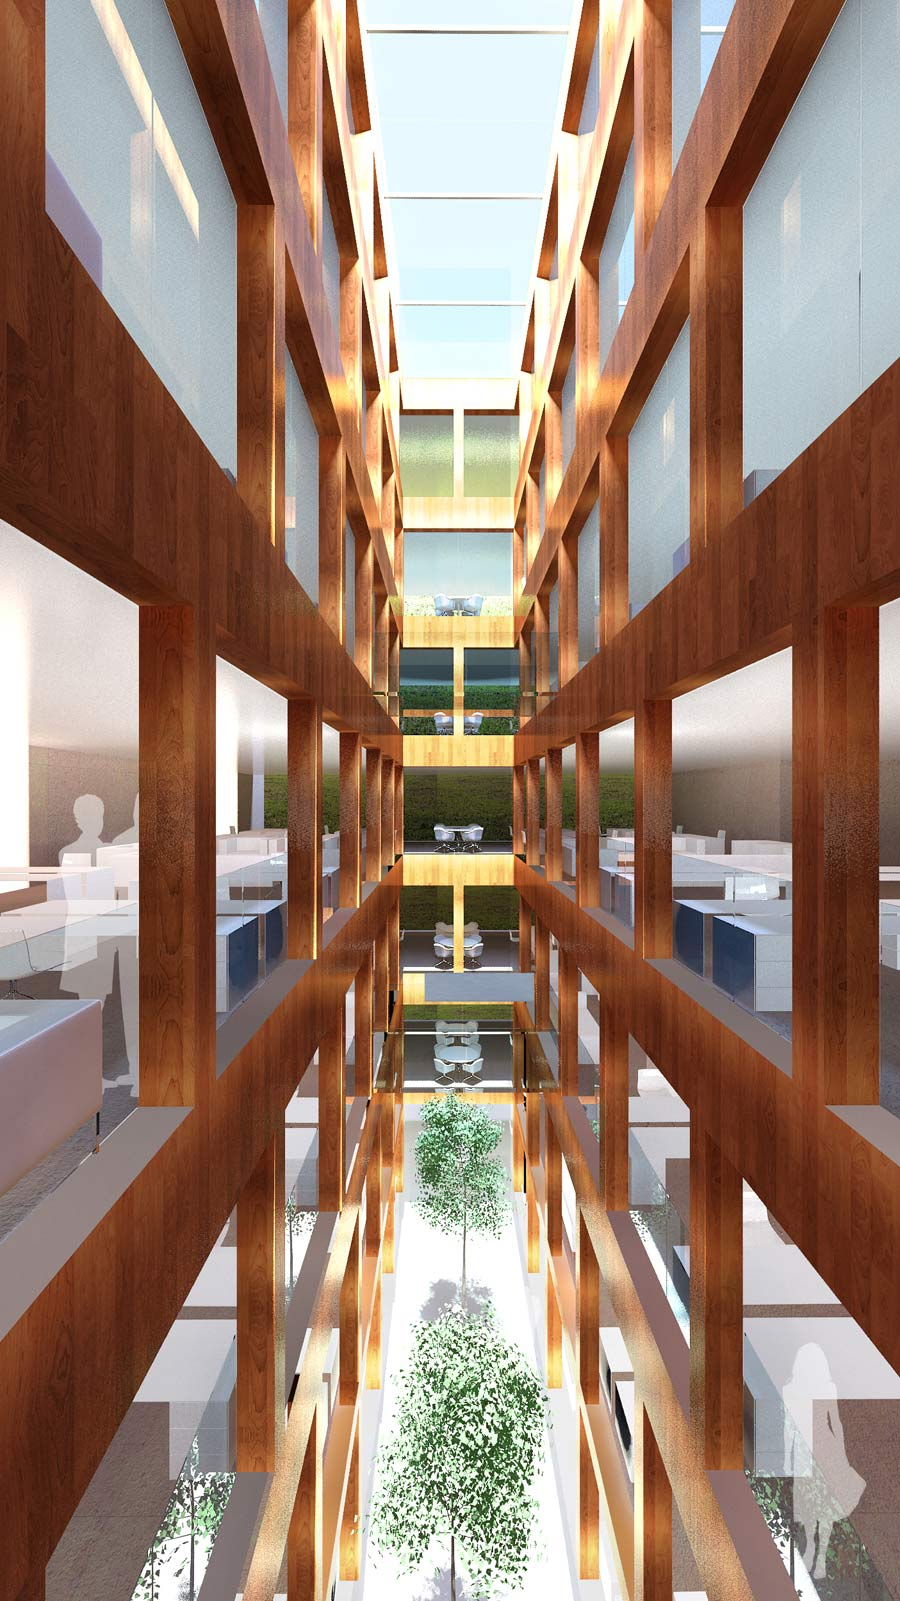 Victoria Embankment Atrium by Marks Barfield Architects